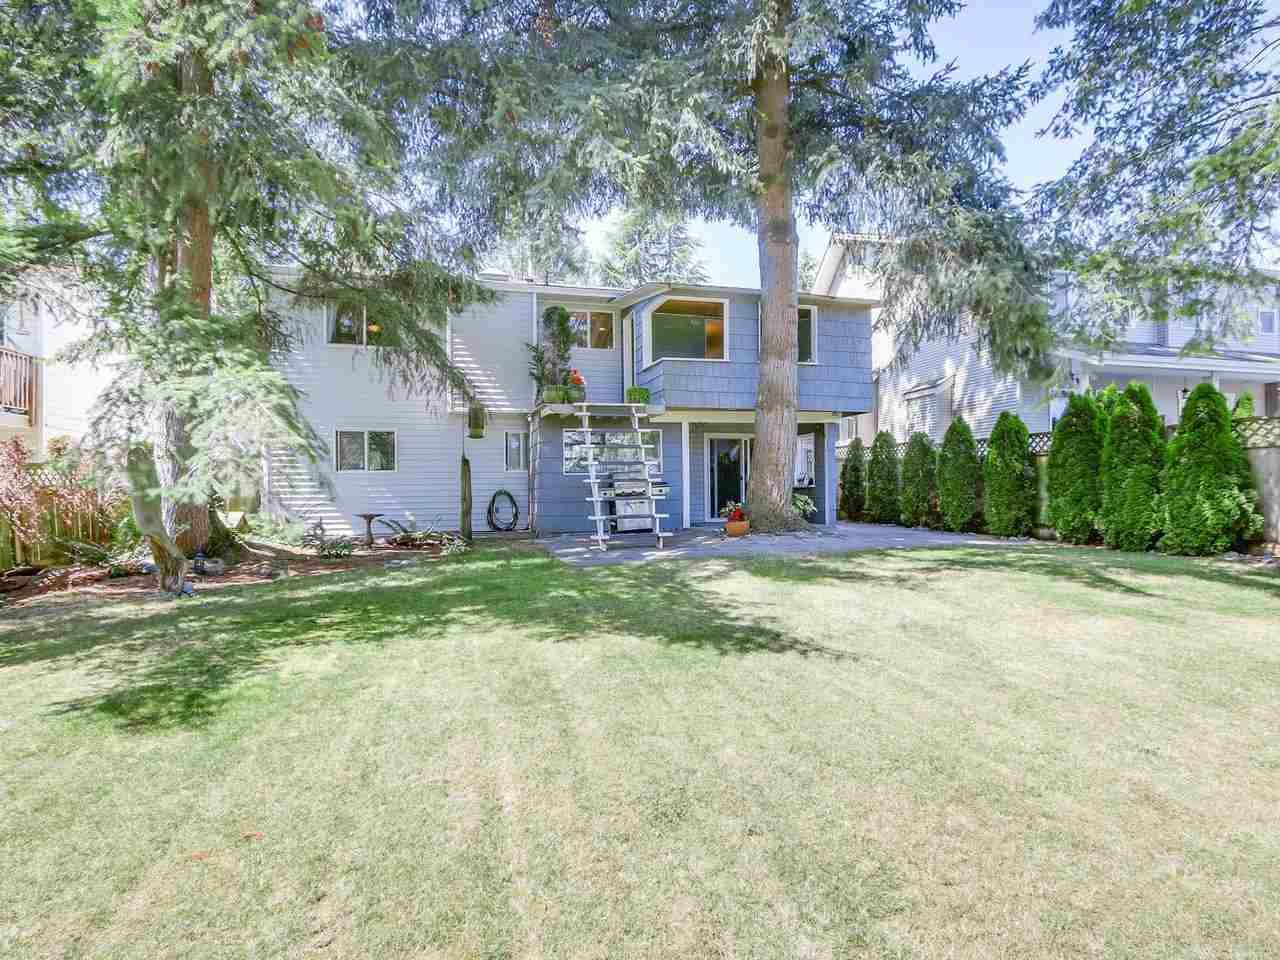 """Main Photo: 2232 MADRONA Place in Surrey: King George Corridor House for sale in """"West of King George"""" (South Surrey White Rock)  : MLS®# R2202364"""